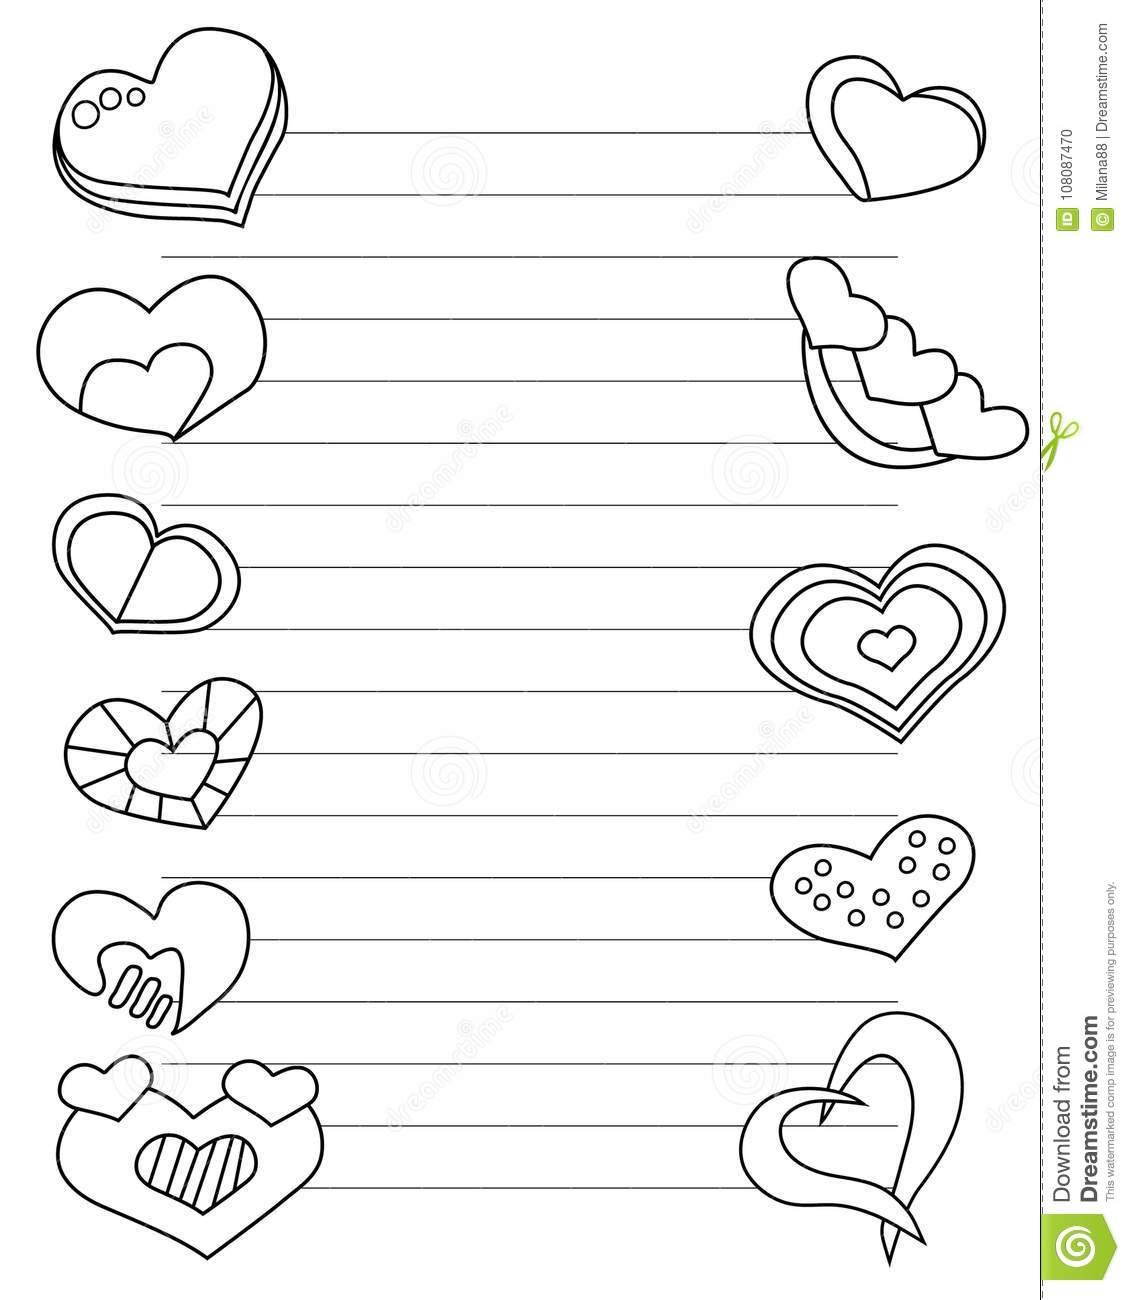 valentines day stylized sheet of paper with hearts and lines for